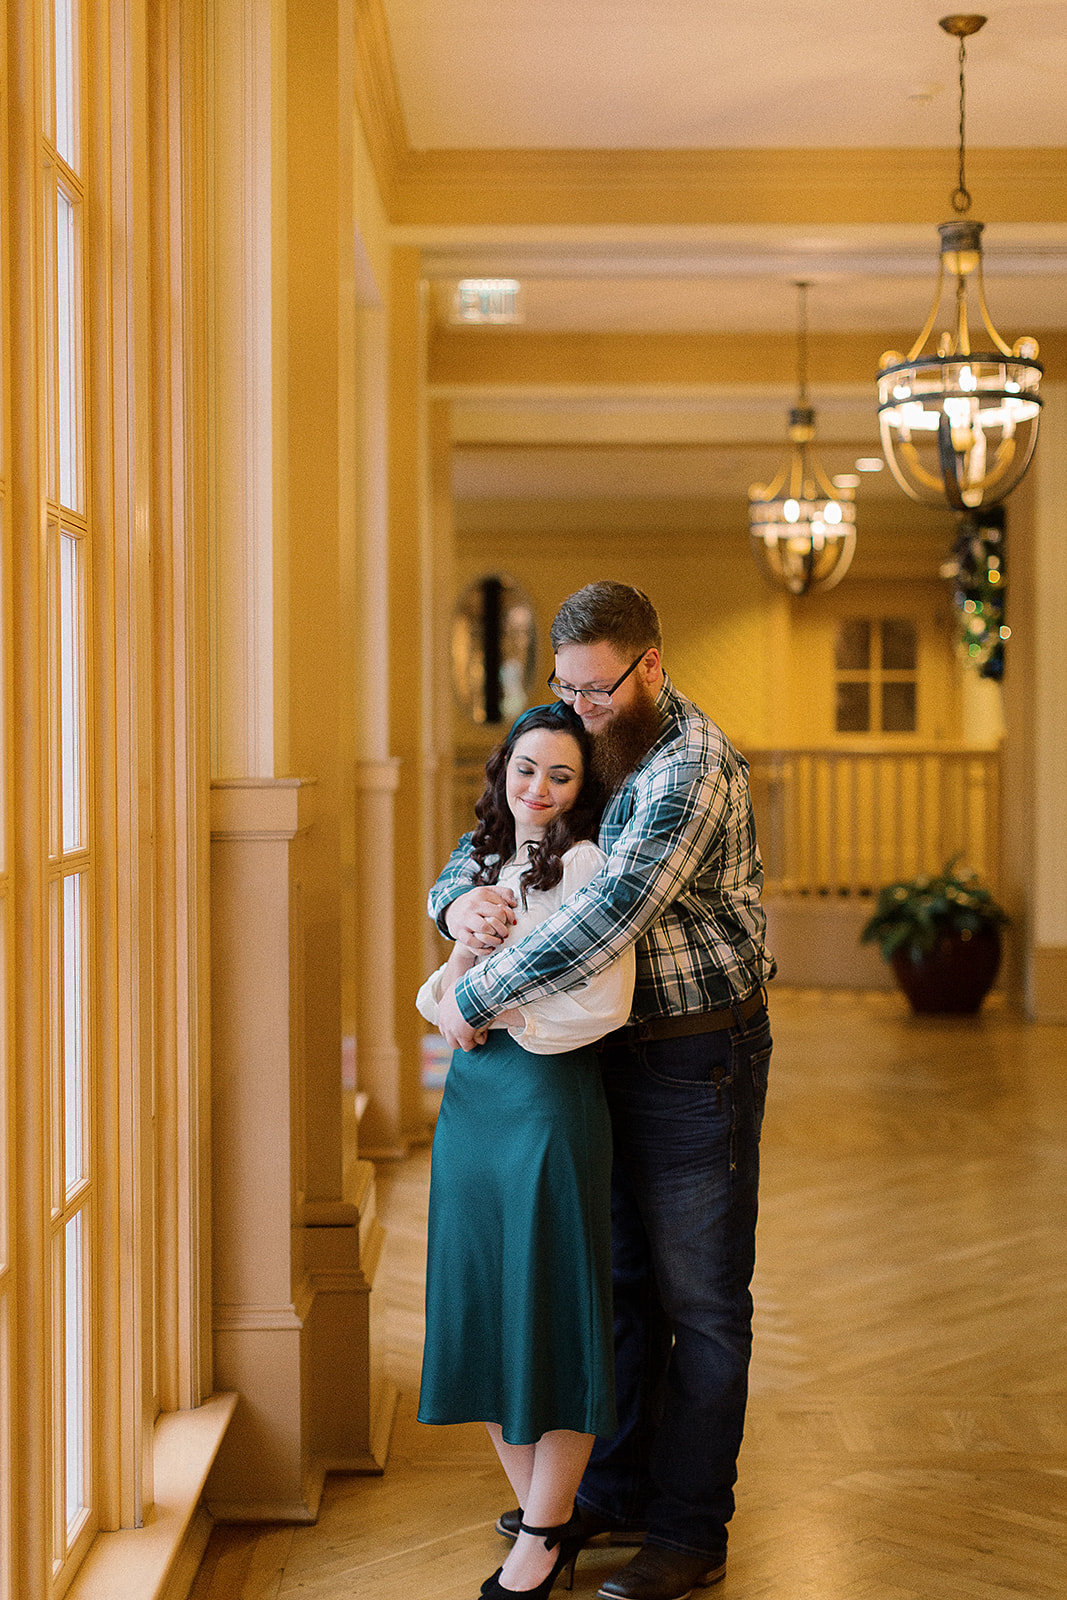 Cassidy_+_Kylor_Proposal_at_Disney_s_Beach_Club_Resort_Photographer_Casie_Marie_Photography-55